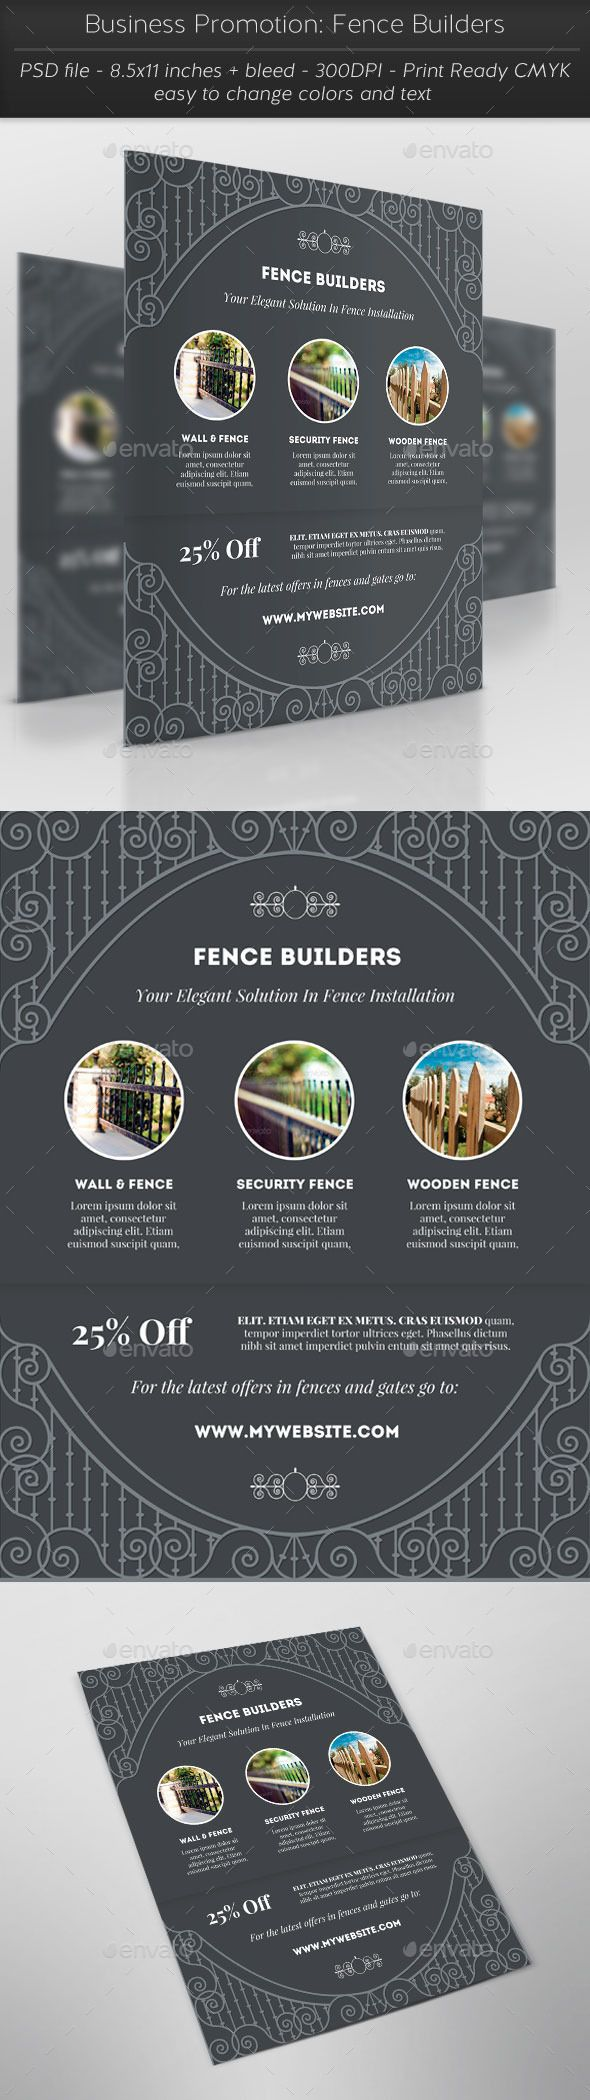 Business Promotion: Fence Builders